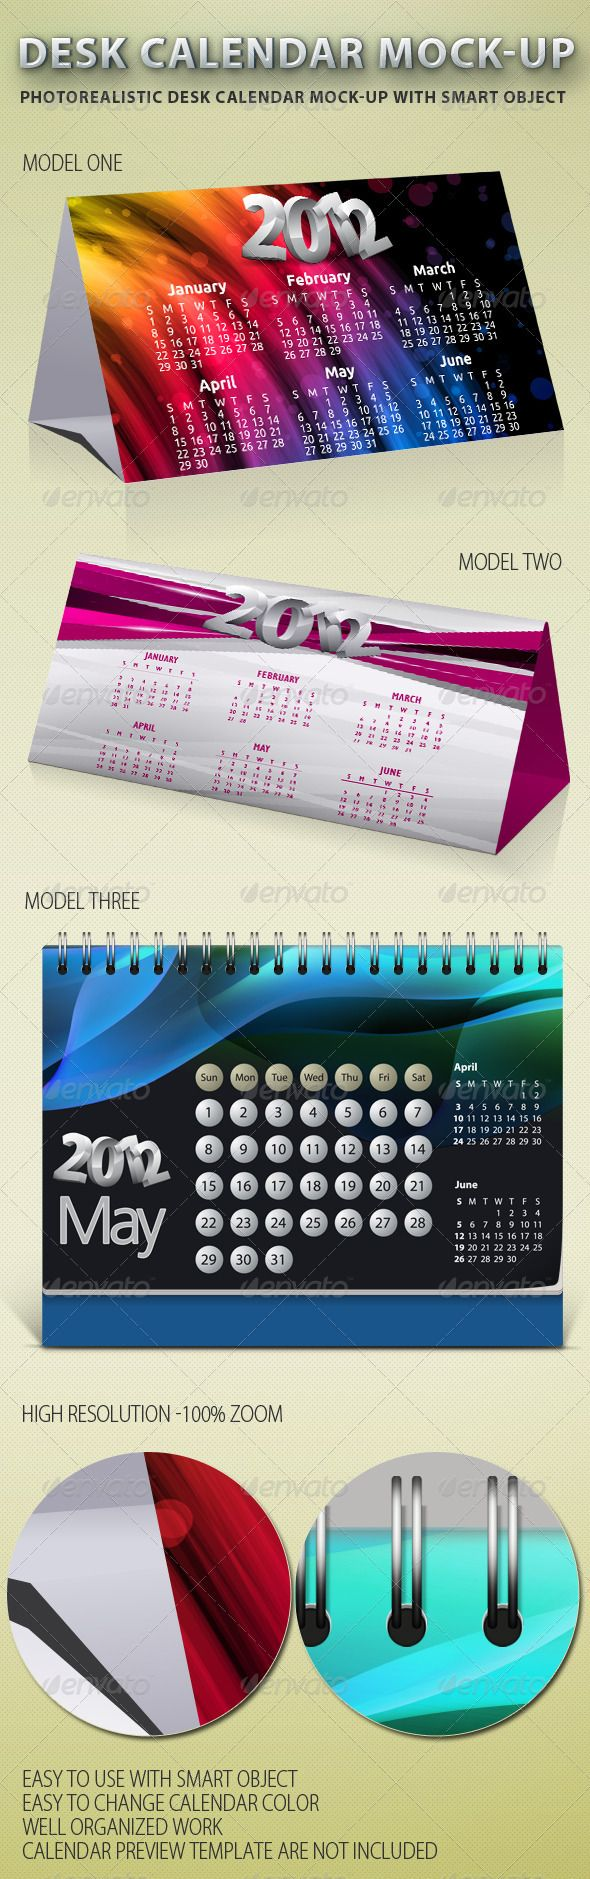 Year Up Calendar : Desk calendar mock up artworks new year s and need to